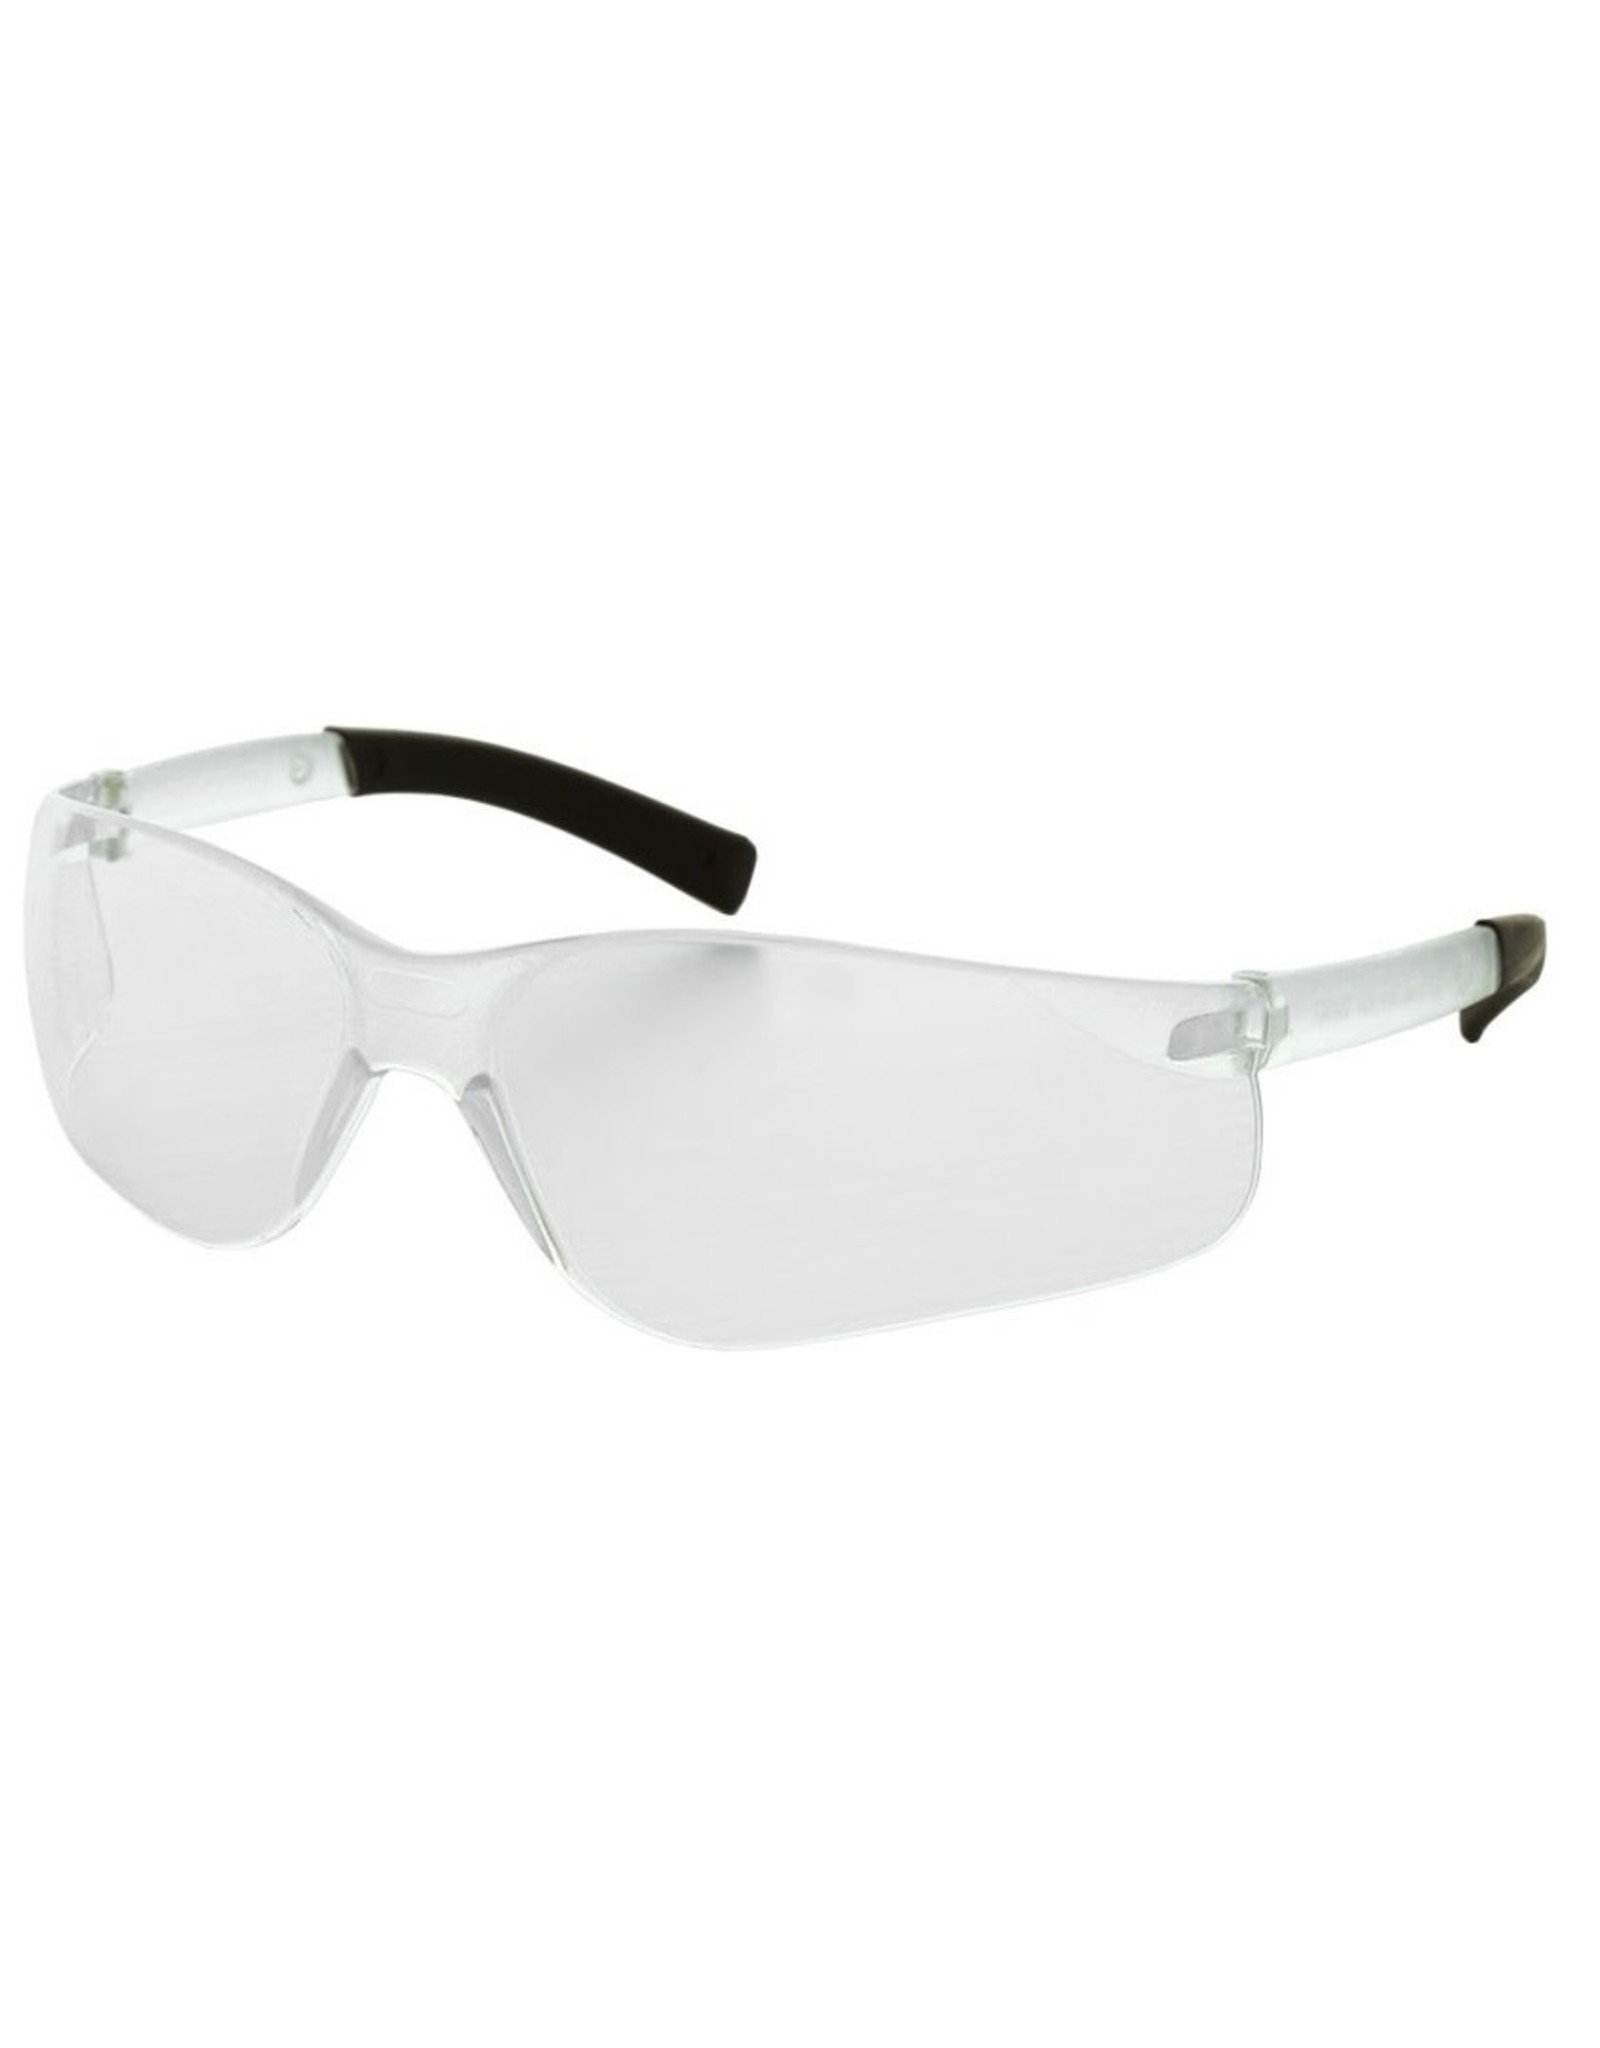 Majestic Glove Hailstorm Safety Glasses with Anti-Fog Lens